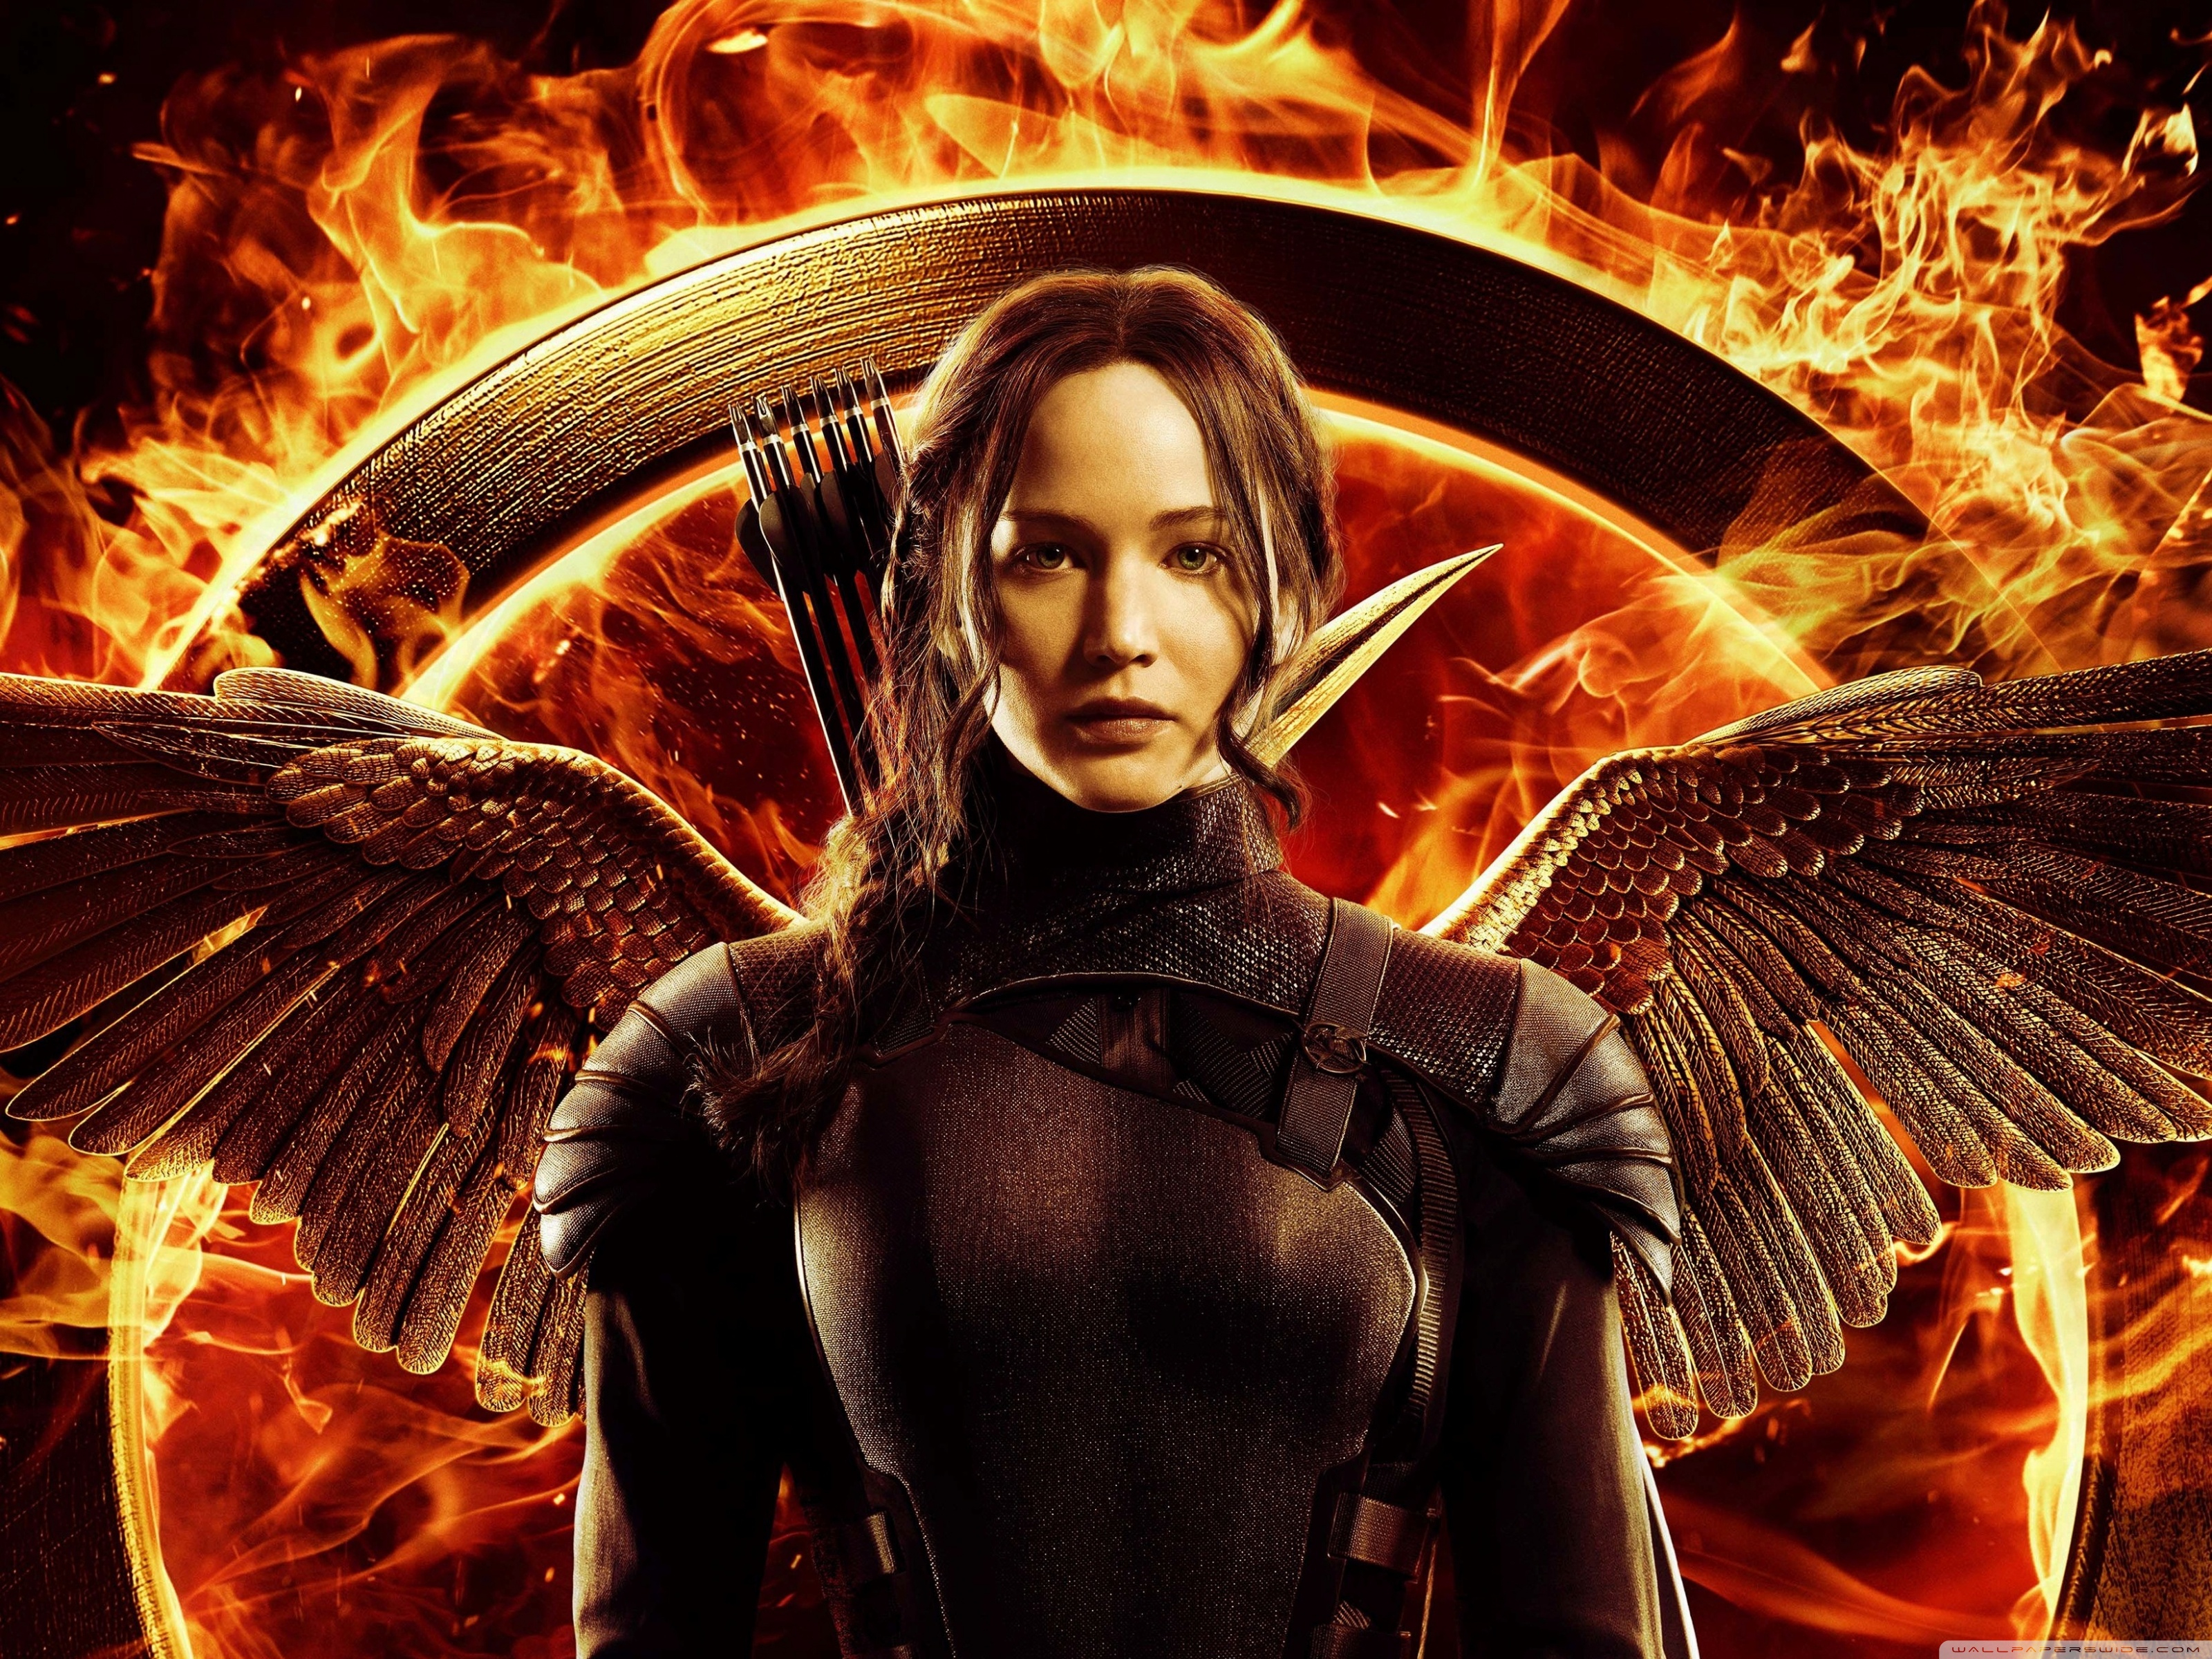 Download Free WallpaperThe Hunger Games Mockingjay Part Katniss